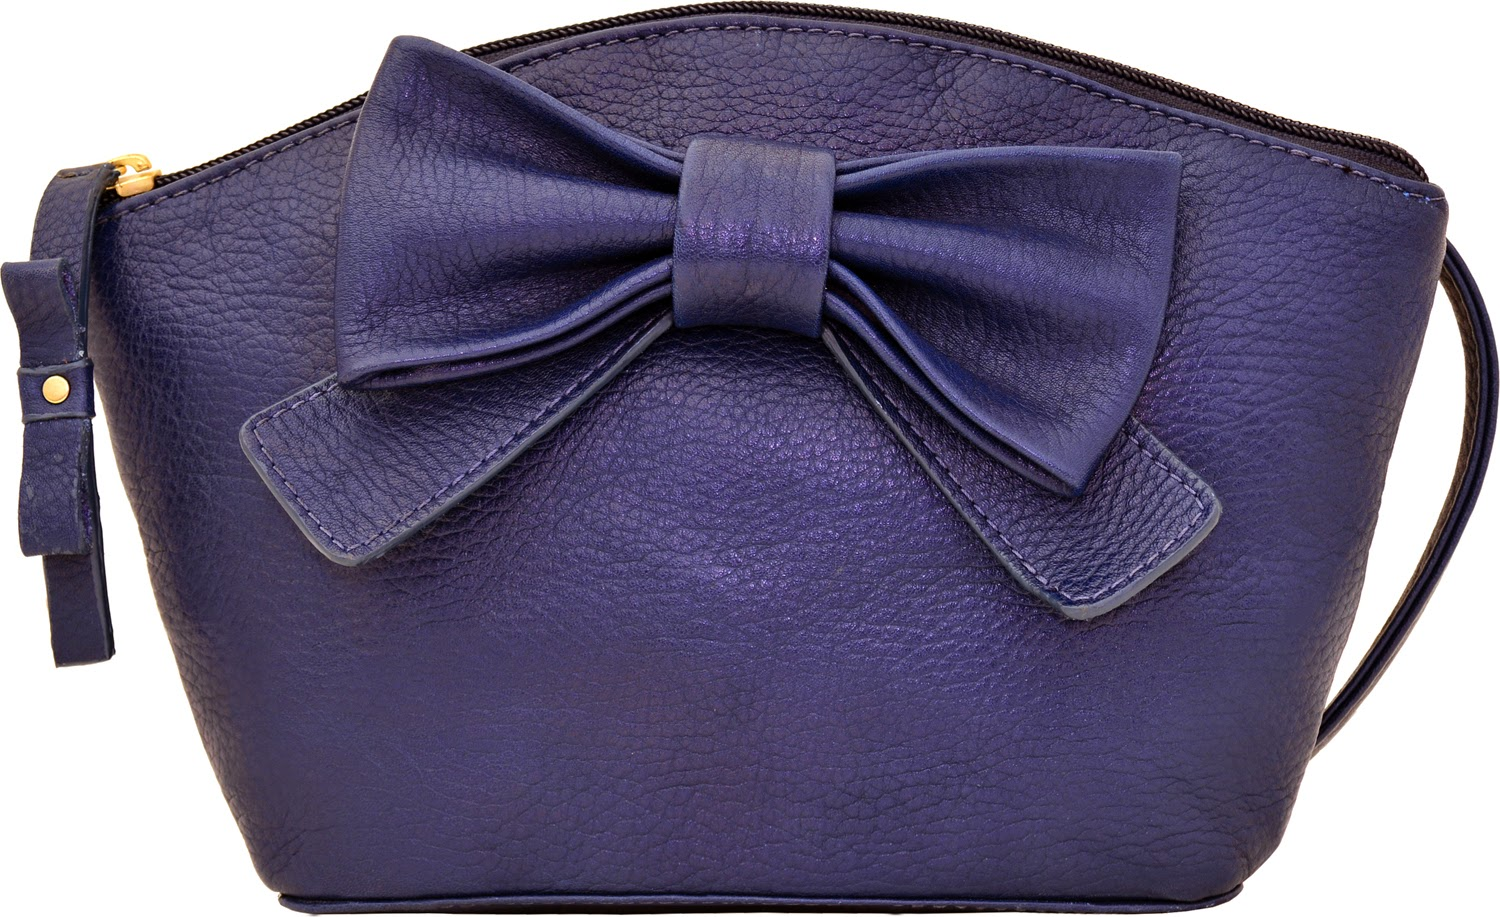 Hidesign midnight blue satchel with a bow